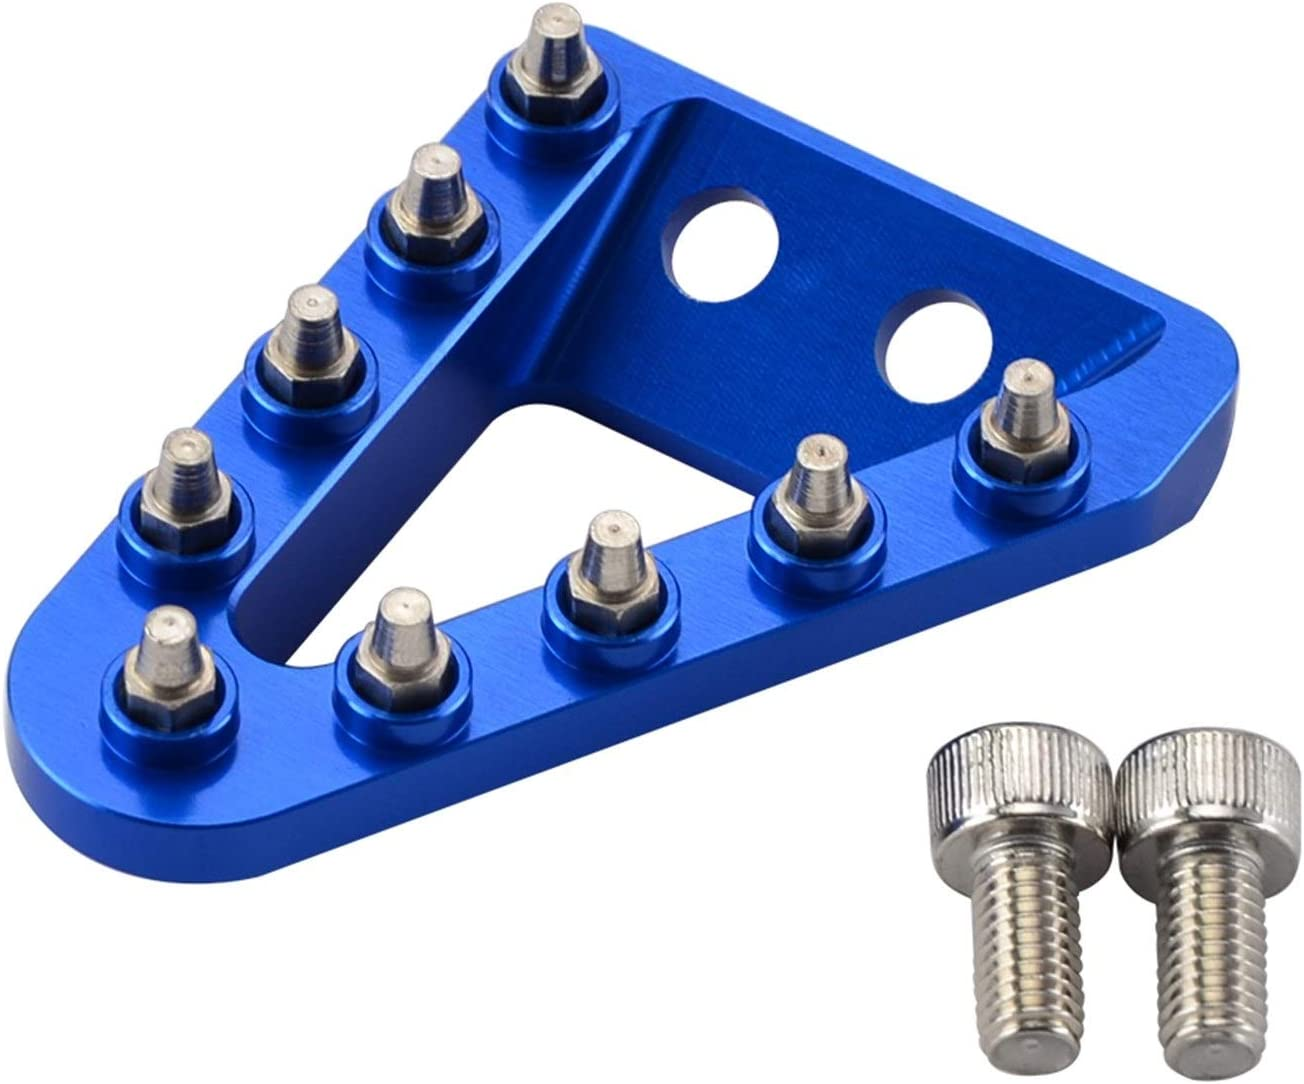 SHIZHI Freno Trasero Pedal Paso Tip Plate Fit for KTM SX SXF EXC EXCF XC XCF XCW XCFW for Husqvarna 125 150 250 350 450 500 2017-2020 2016 Color : Blue